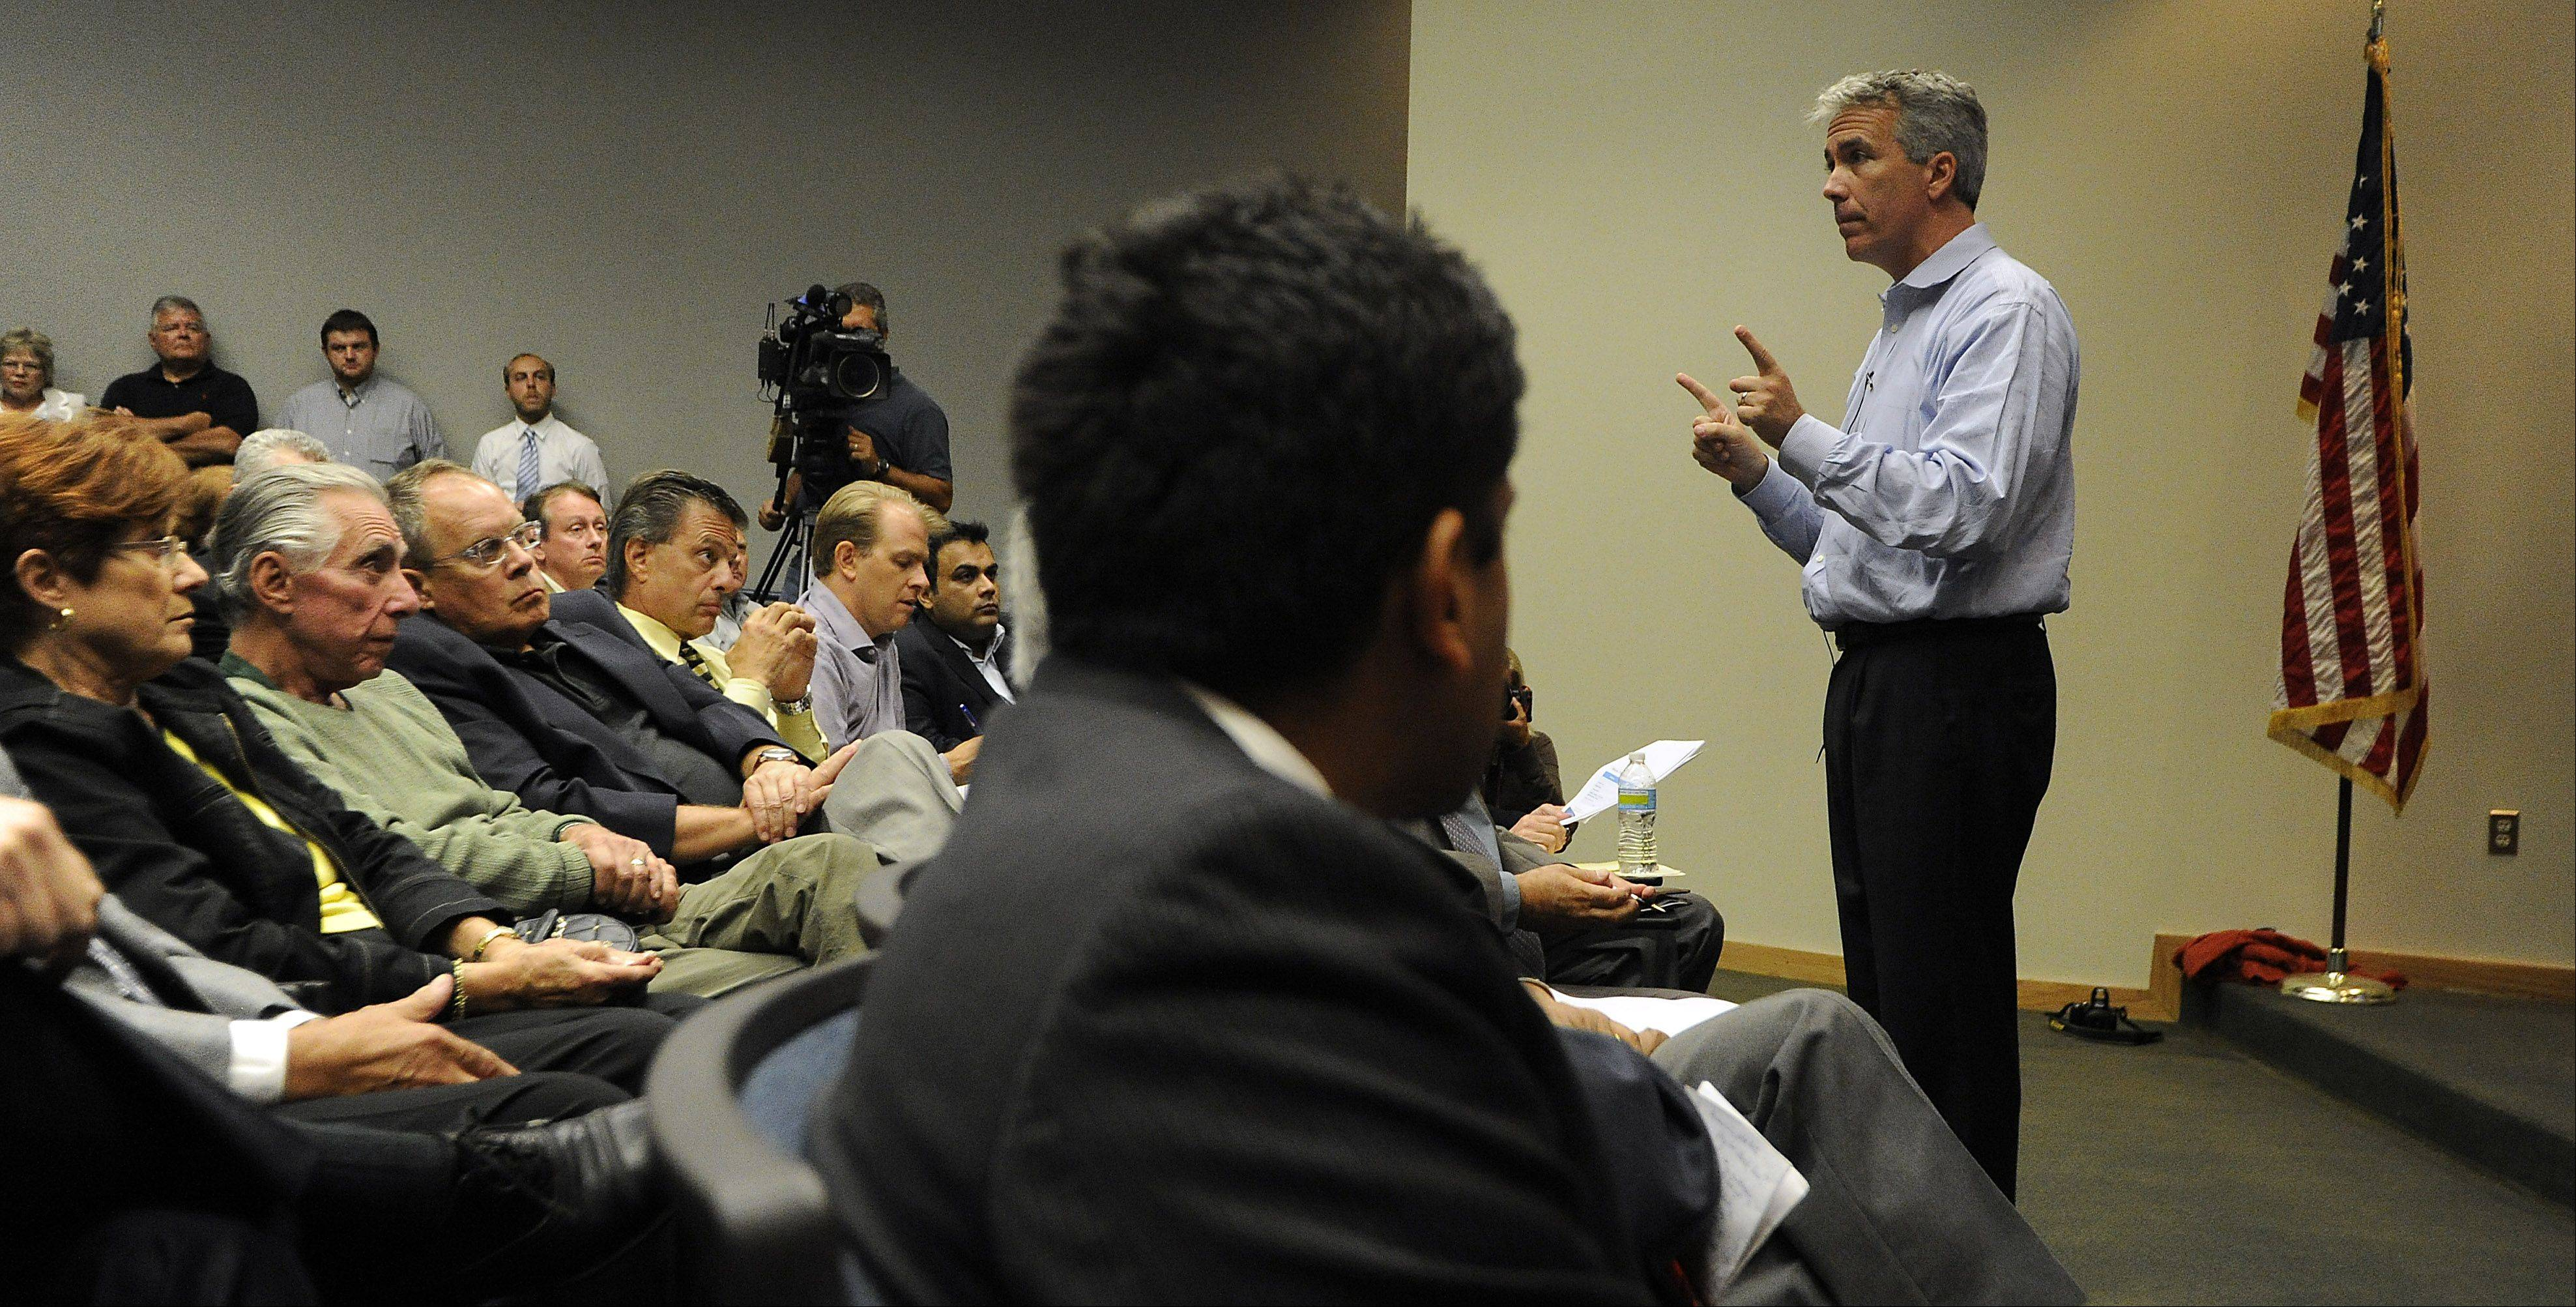 Rep. Joe Walsh, seen here at a small business forum in Schaumburg on Sept. 8, spent much of Tuesday night speaking during a gun rights forum at the Codman Cultural Center in Huntley.